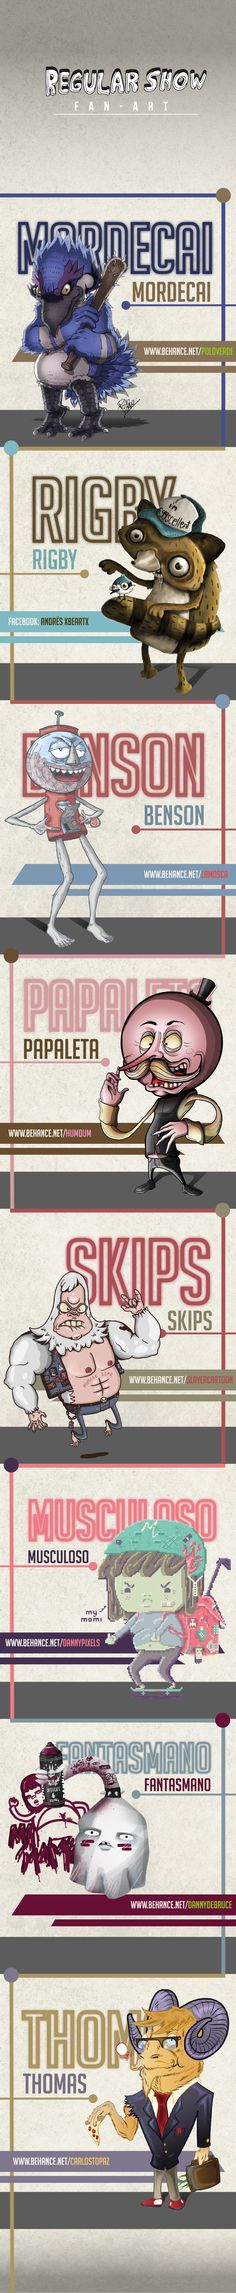 Regular Show / FAN - ART. on Behance multiple owners